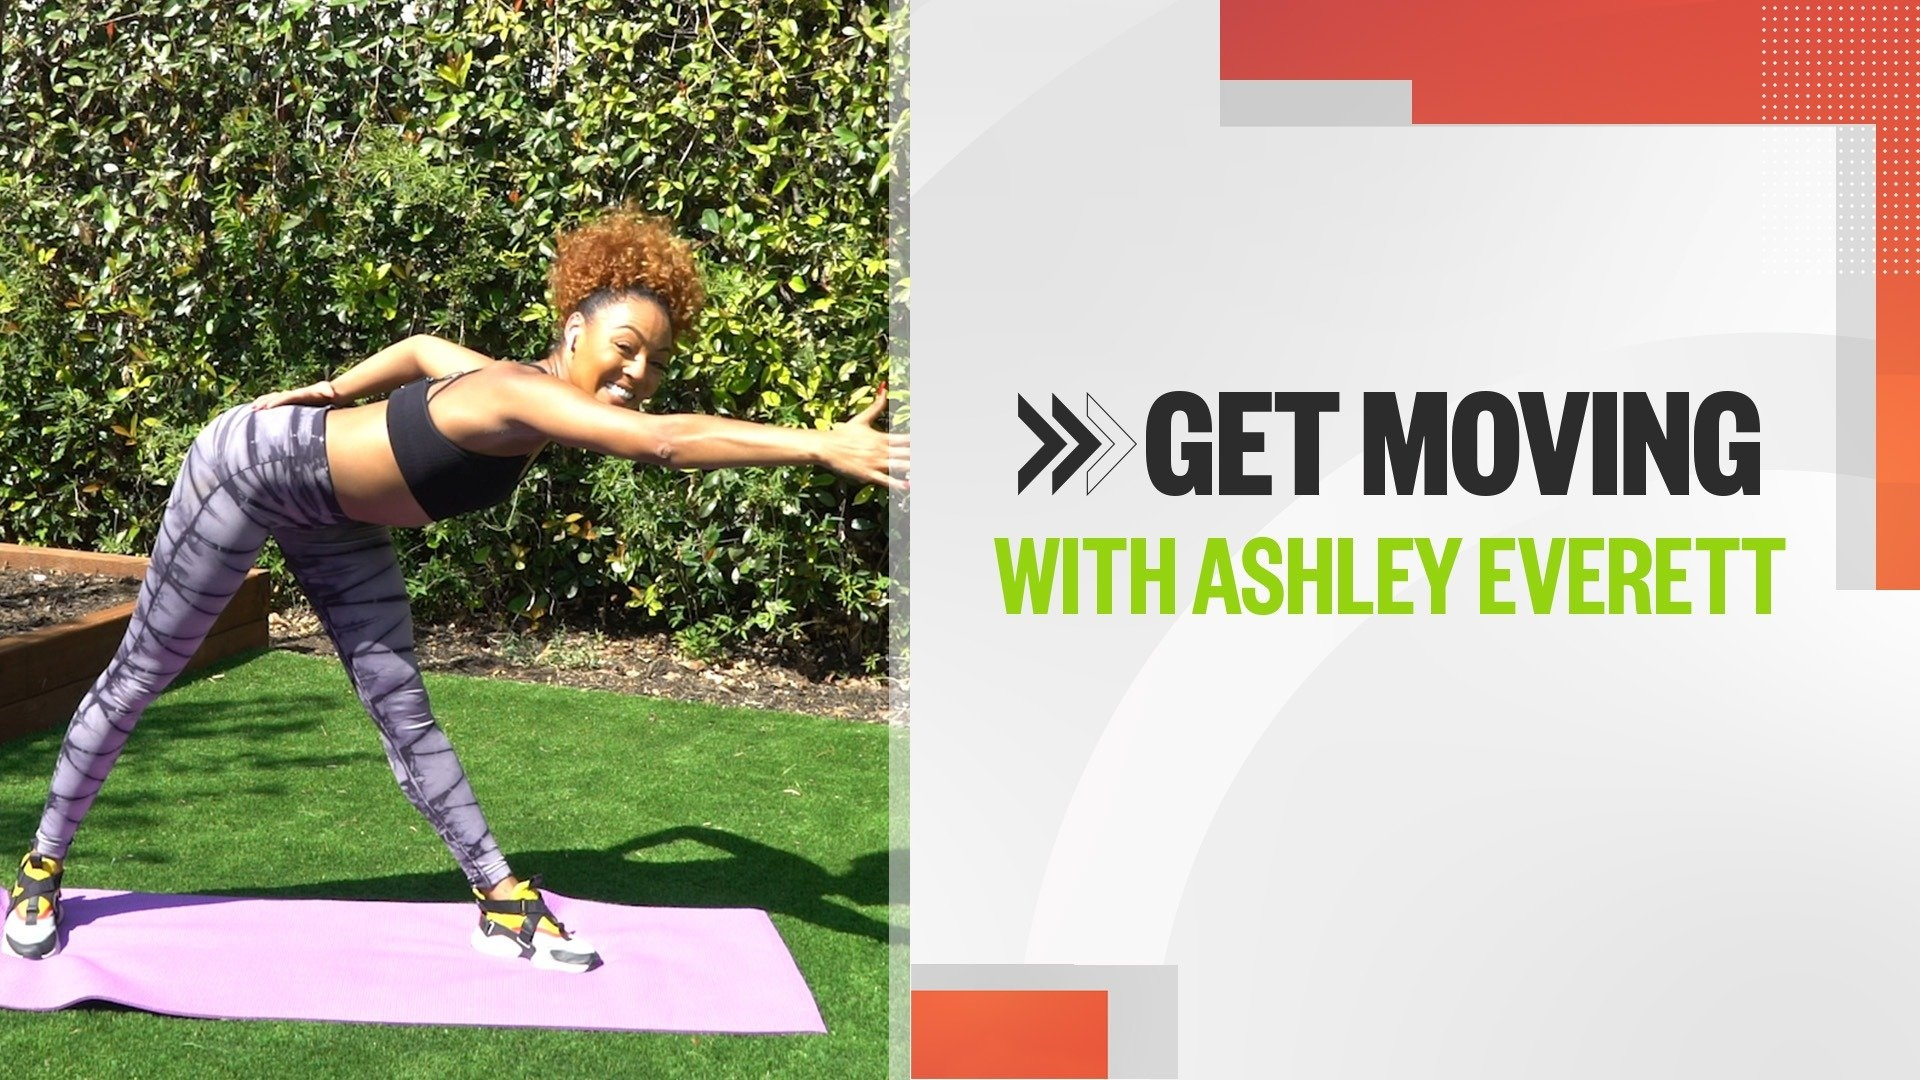 Get Moving With Ashley Everett